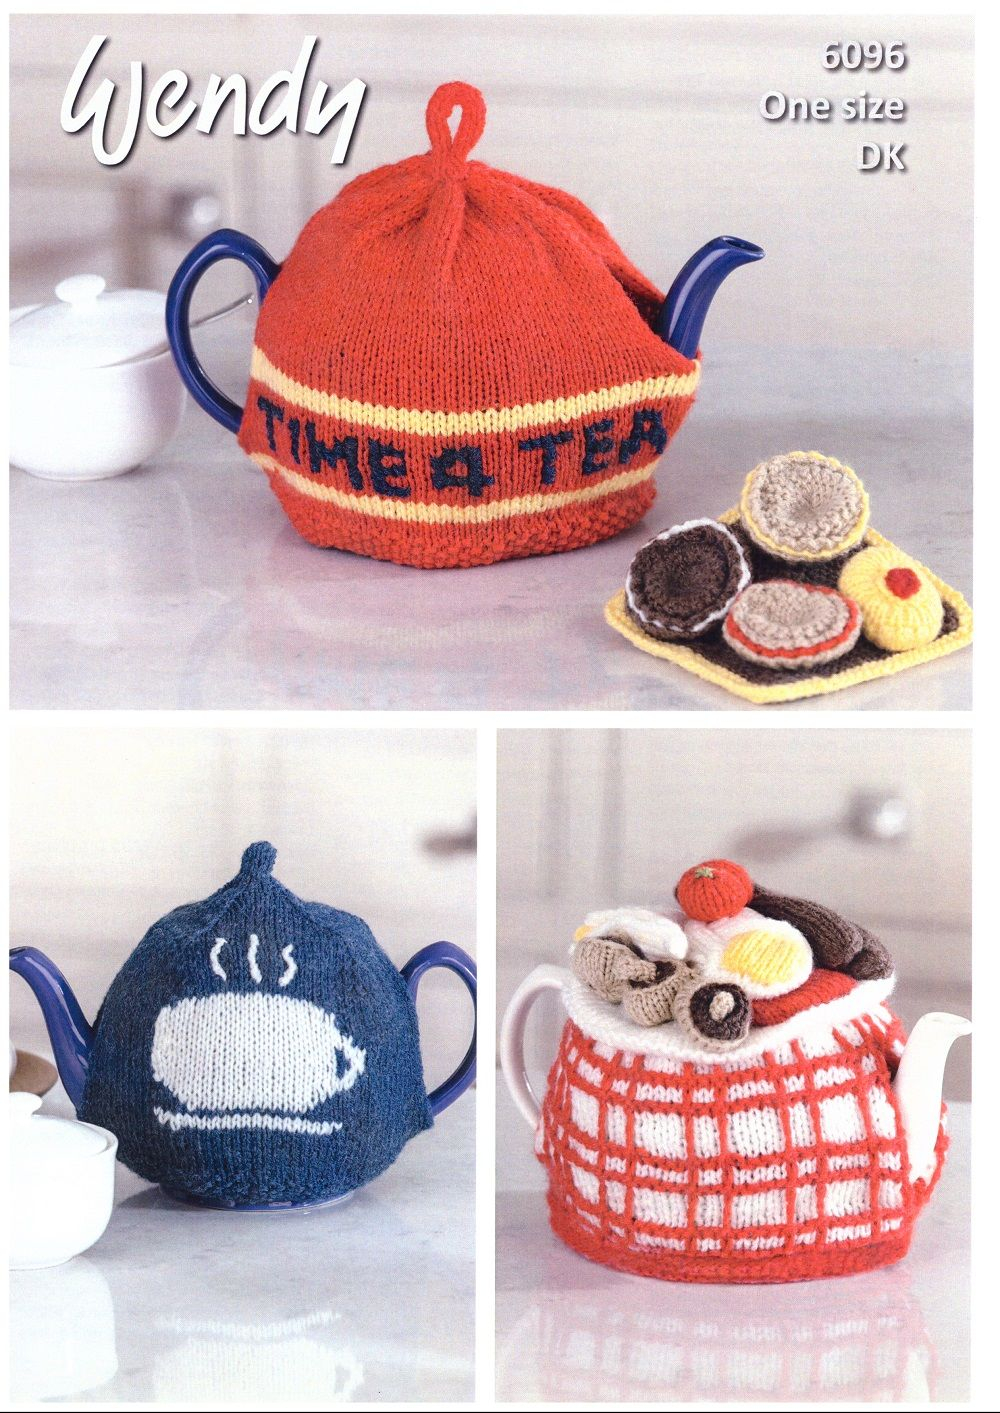 Patterns For Knitted Tea Cosies Wendy Tea Cosies Knitting Pattern In With Wool Dk 6096